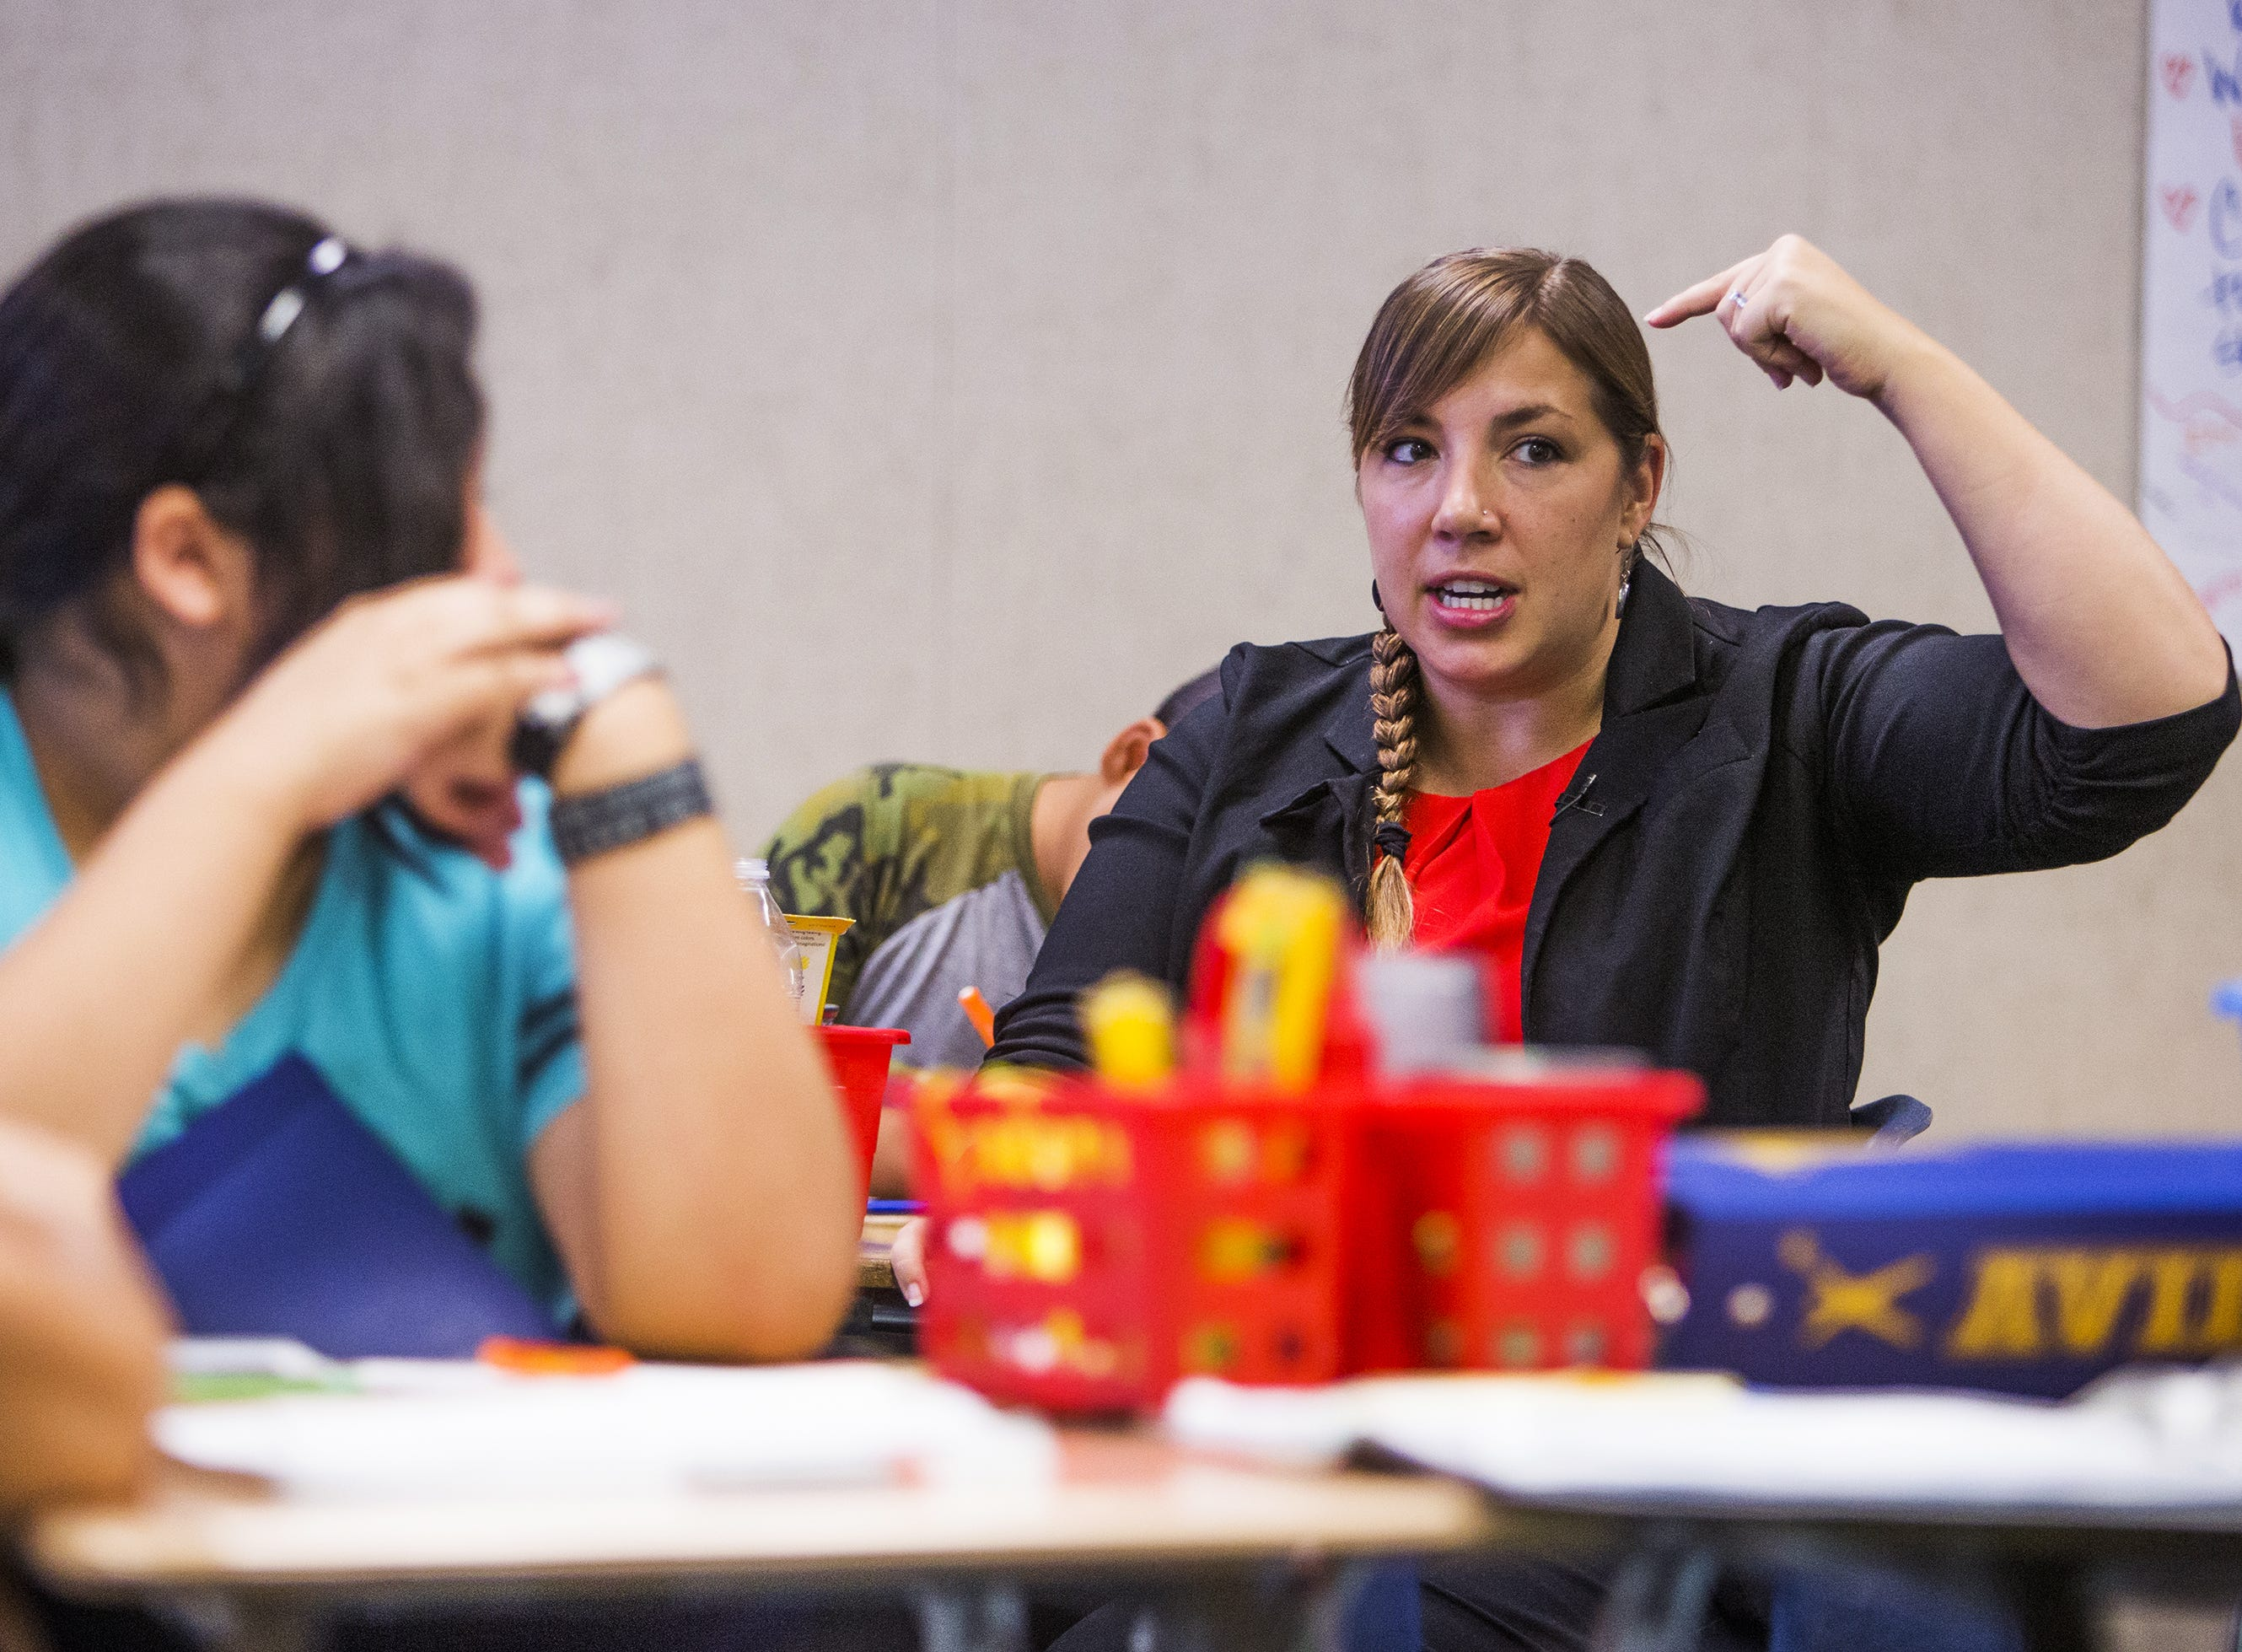 Rebecca Garelli teaches 6th grade science at Sevilla West Elementary School in Phoenix, Monday morning, September 17, 2018. Garelli has been one of the leaders of the #RedforEd movement, demanding increased funding for education in Arizona.